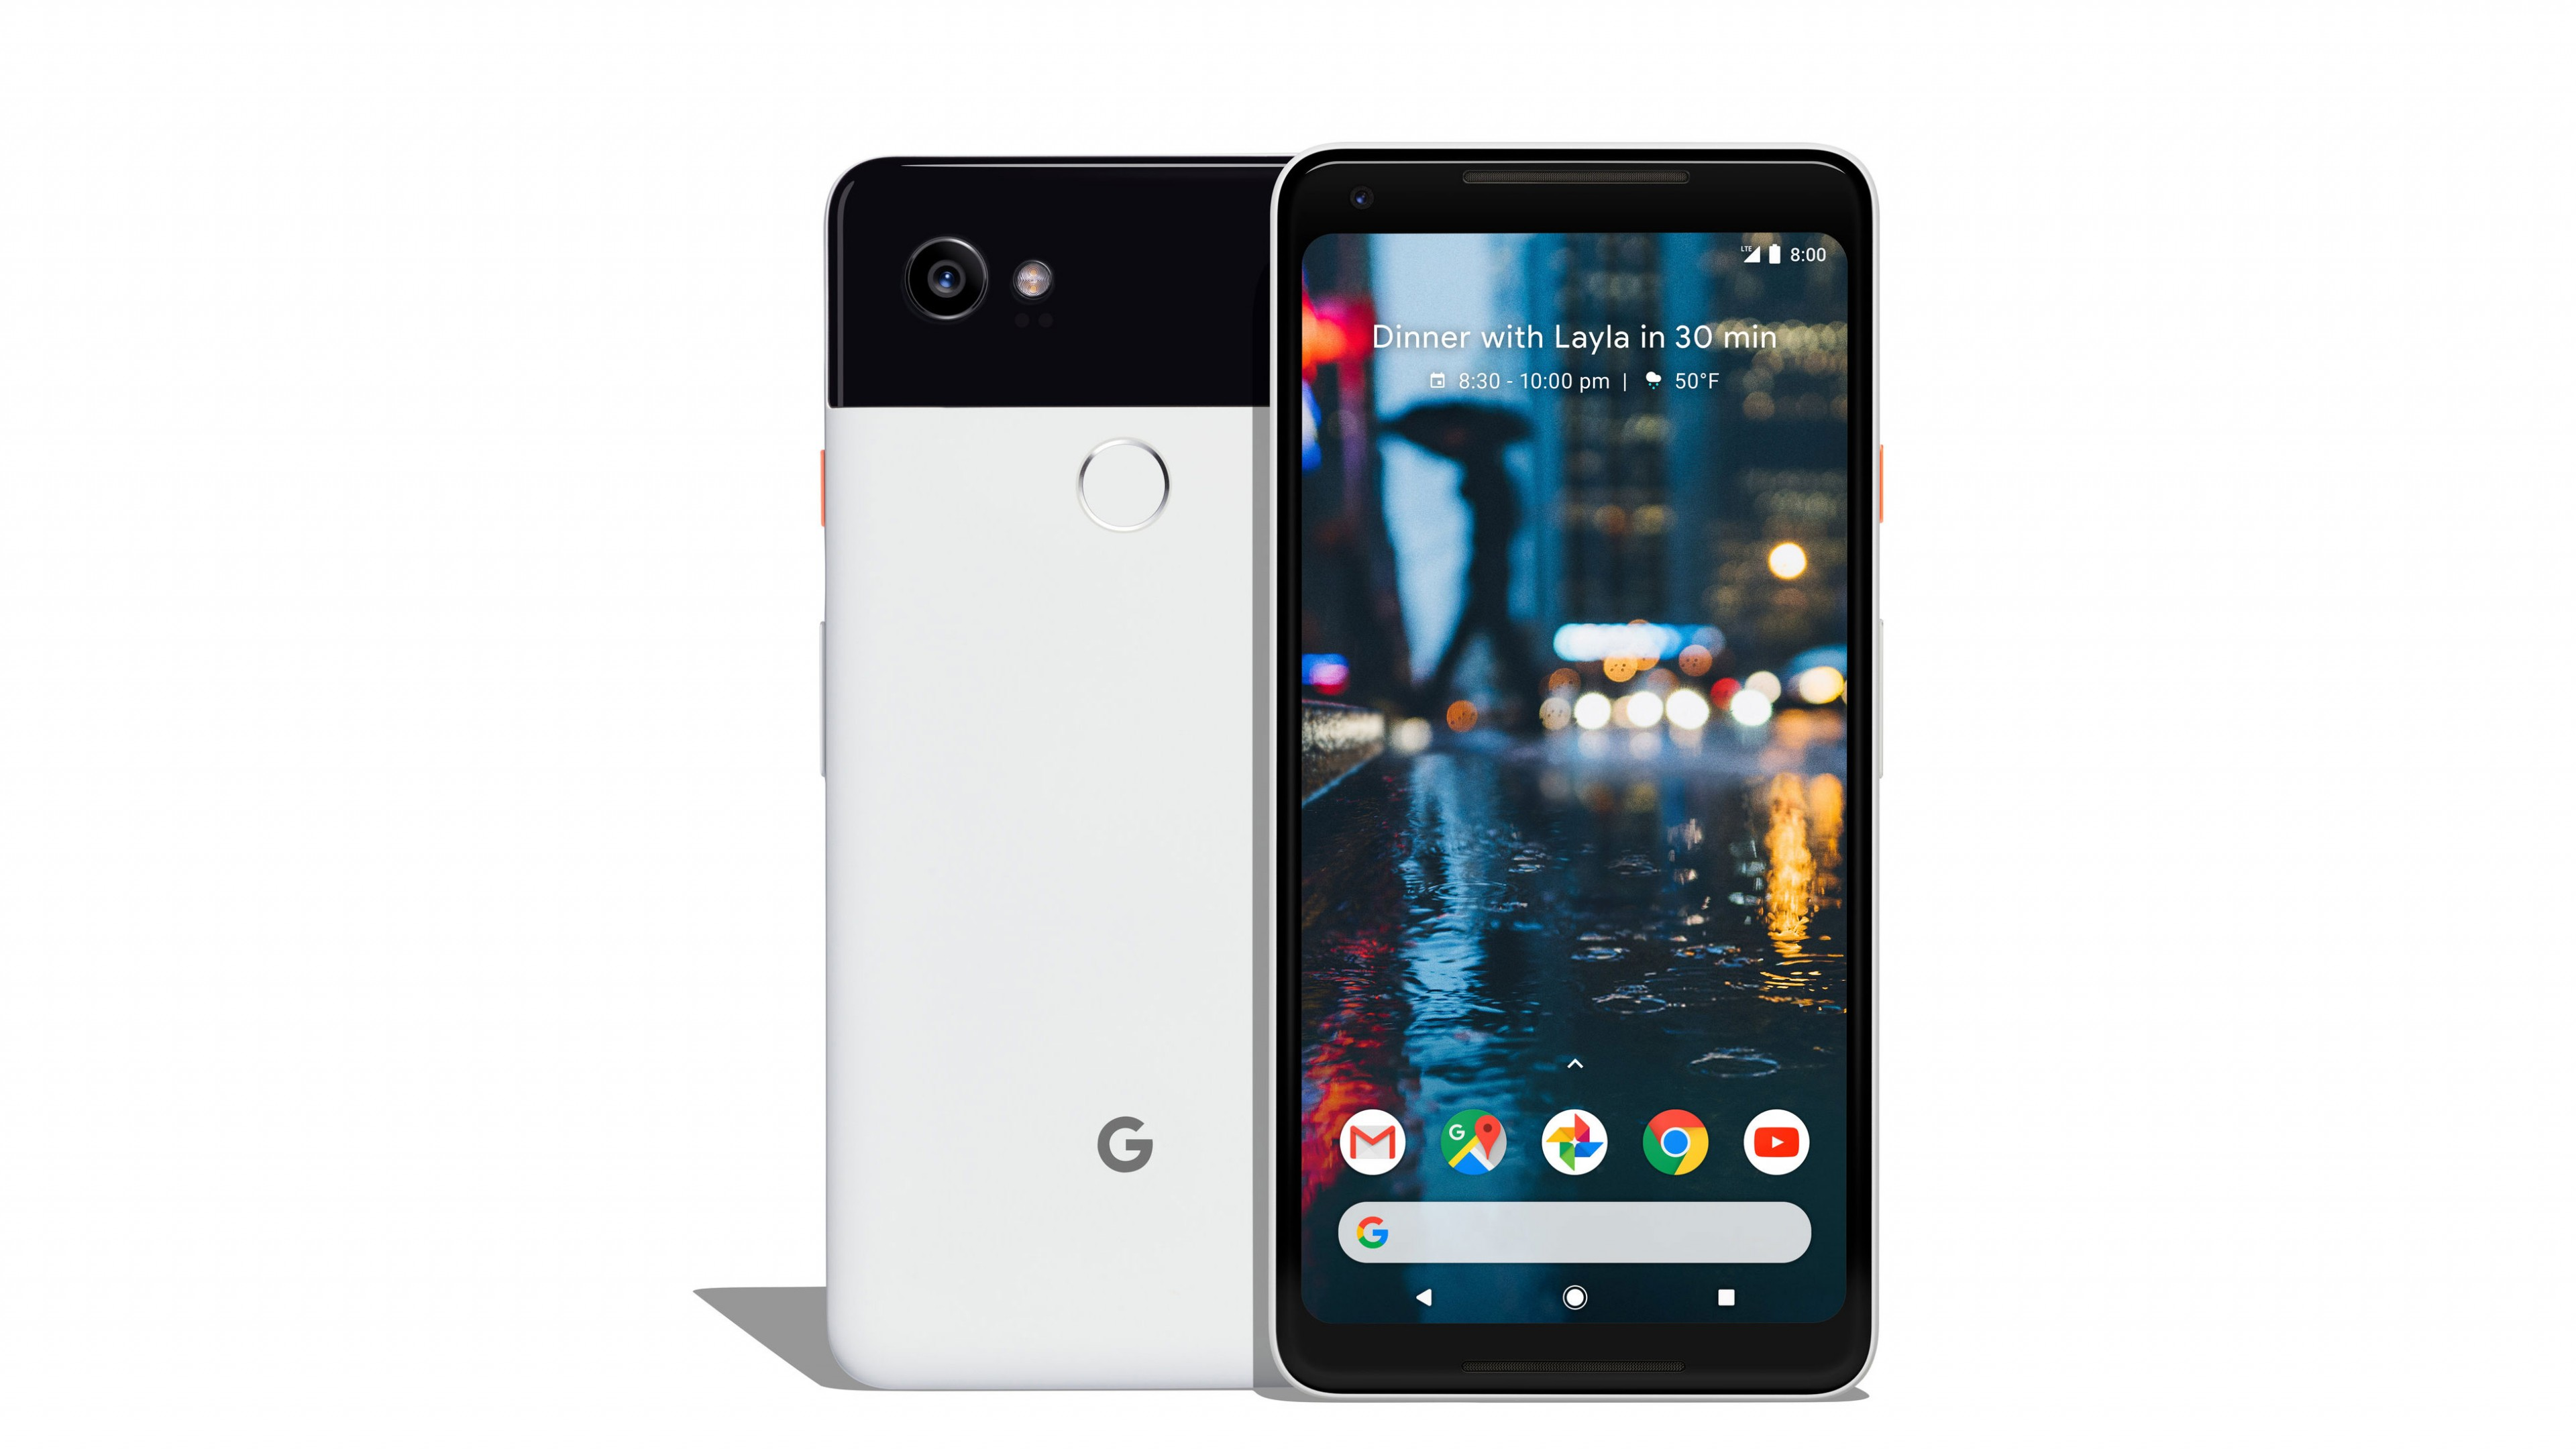 Wallpaper Google Pixel 2 4k Hi Tech Wallpaper Download